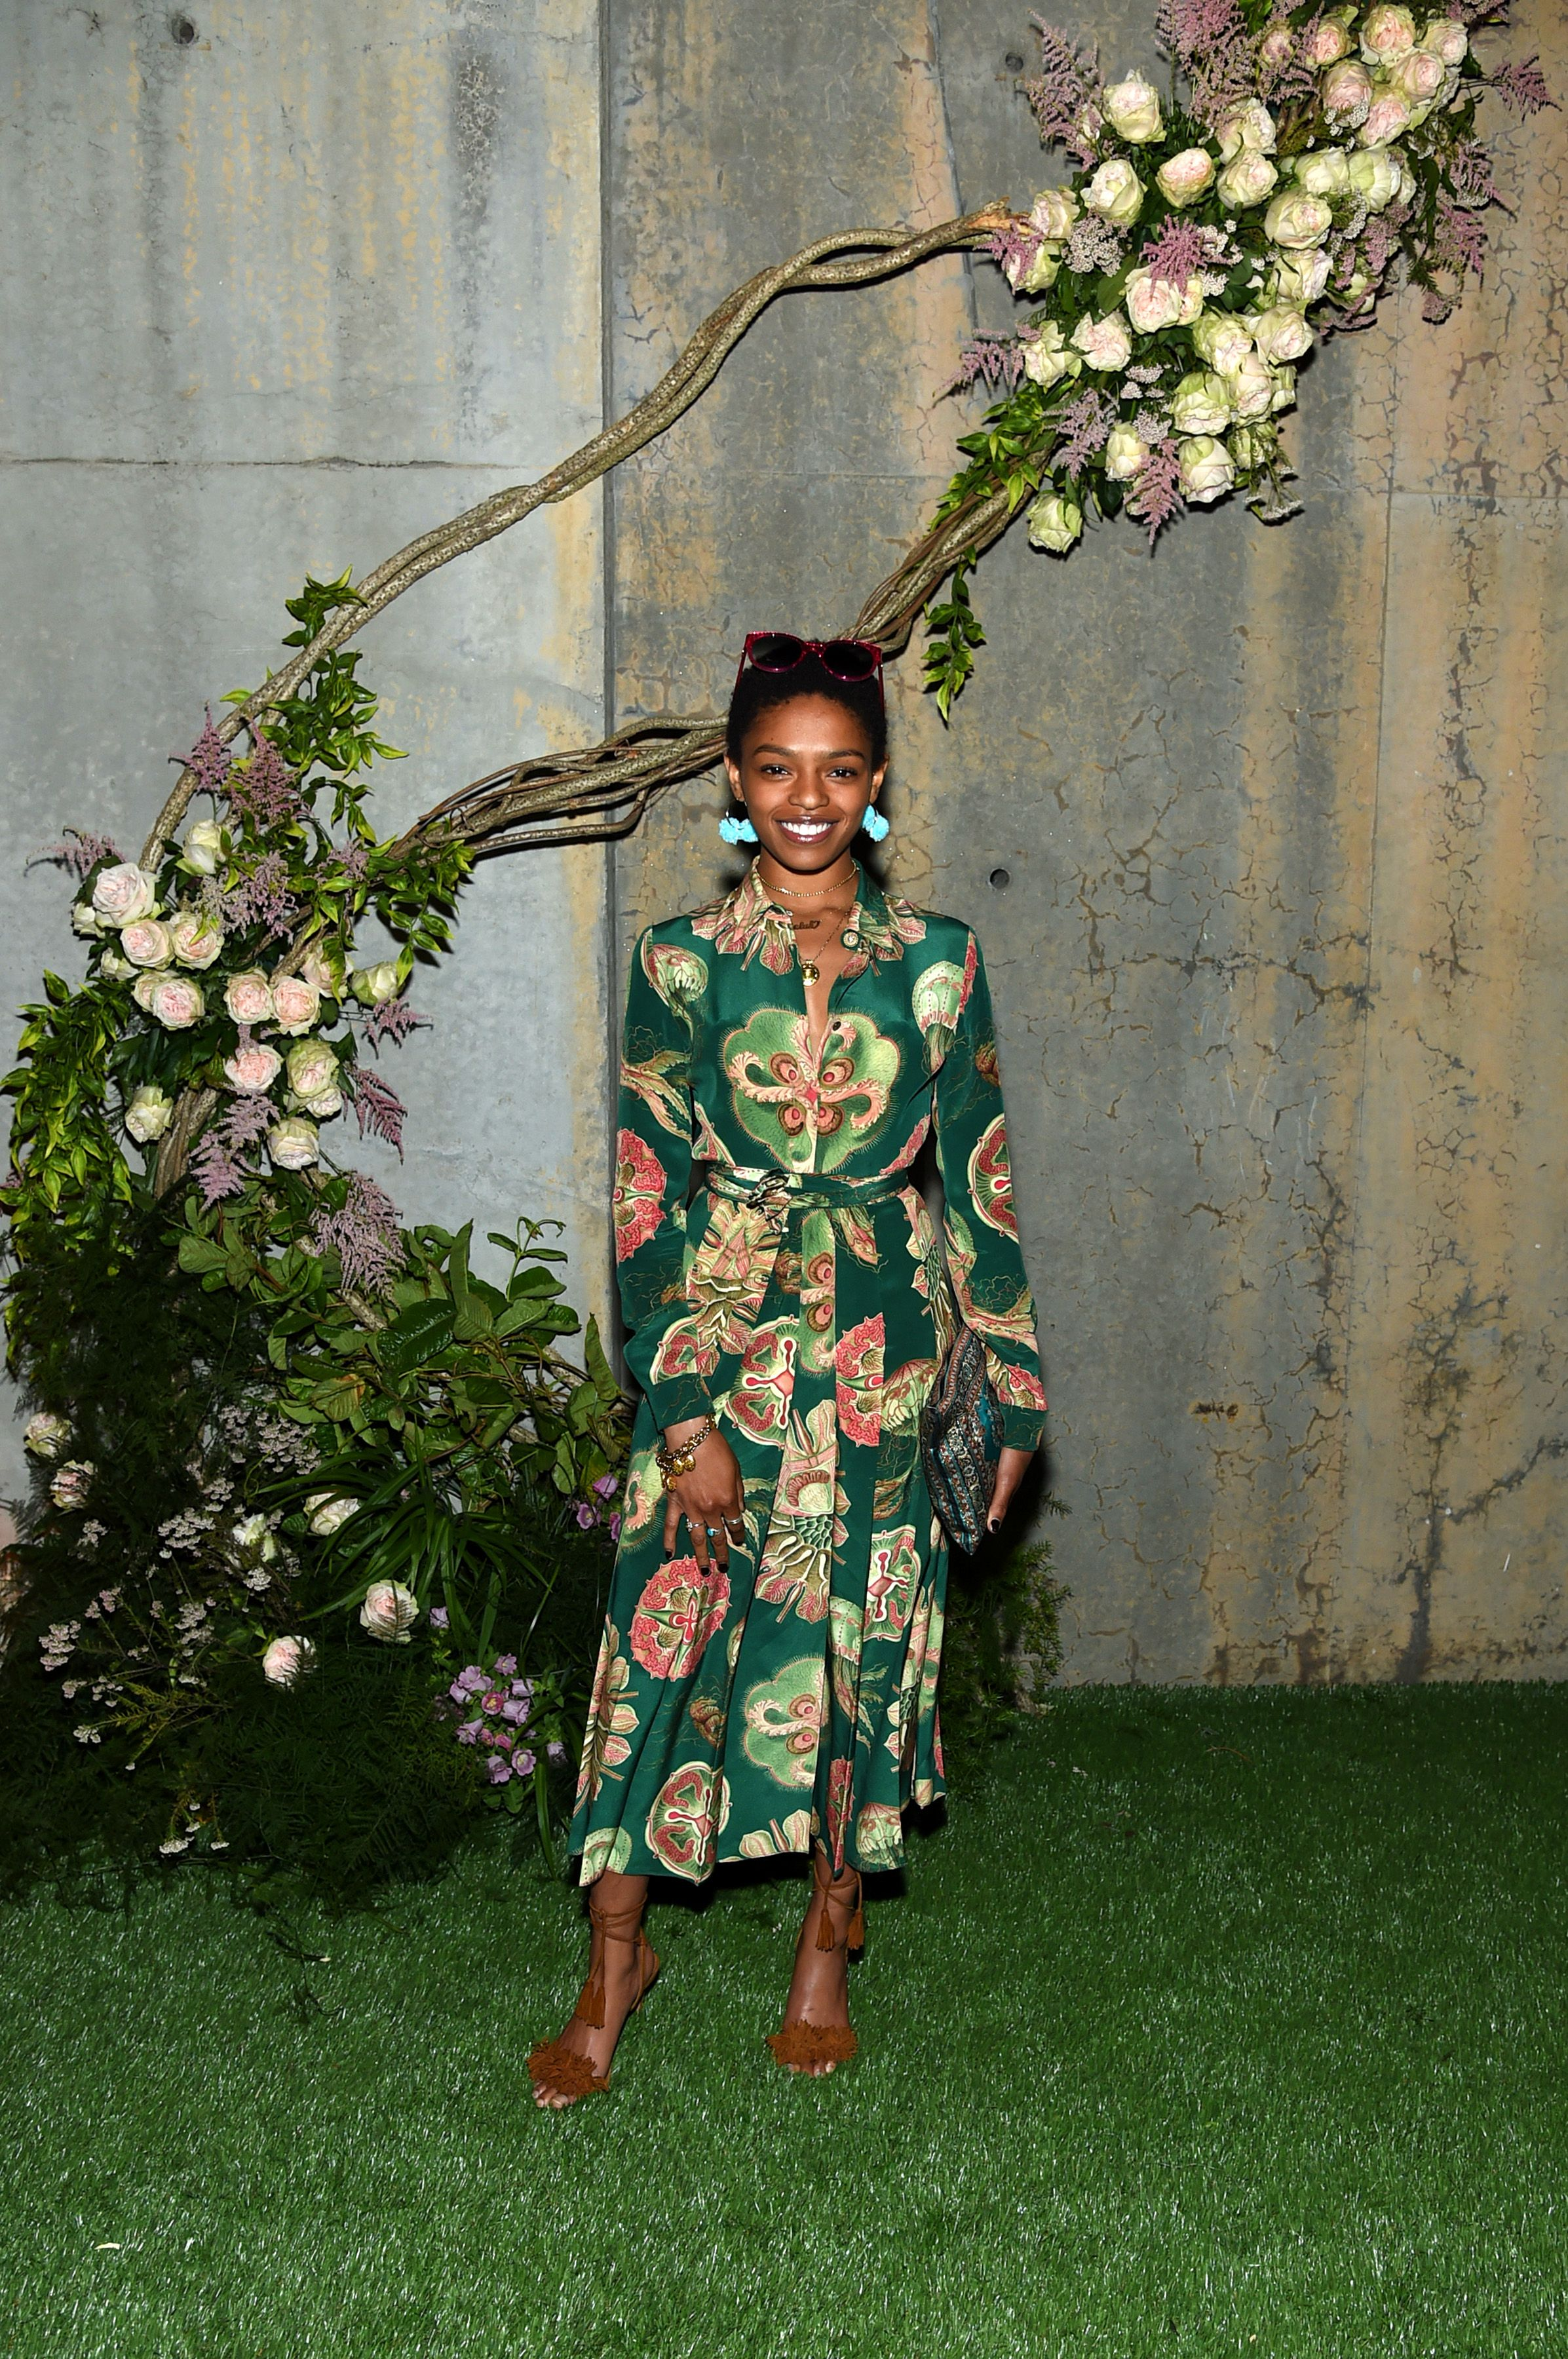 44107af86 Selah Marley attended the debut for new scent Gucci Bloom at in a Gucci  Spring Summer 2017 printed dress.